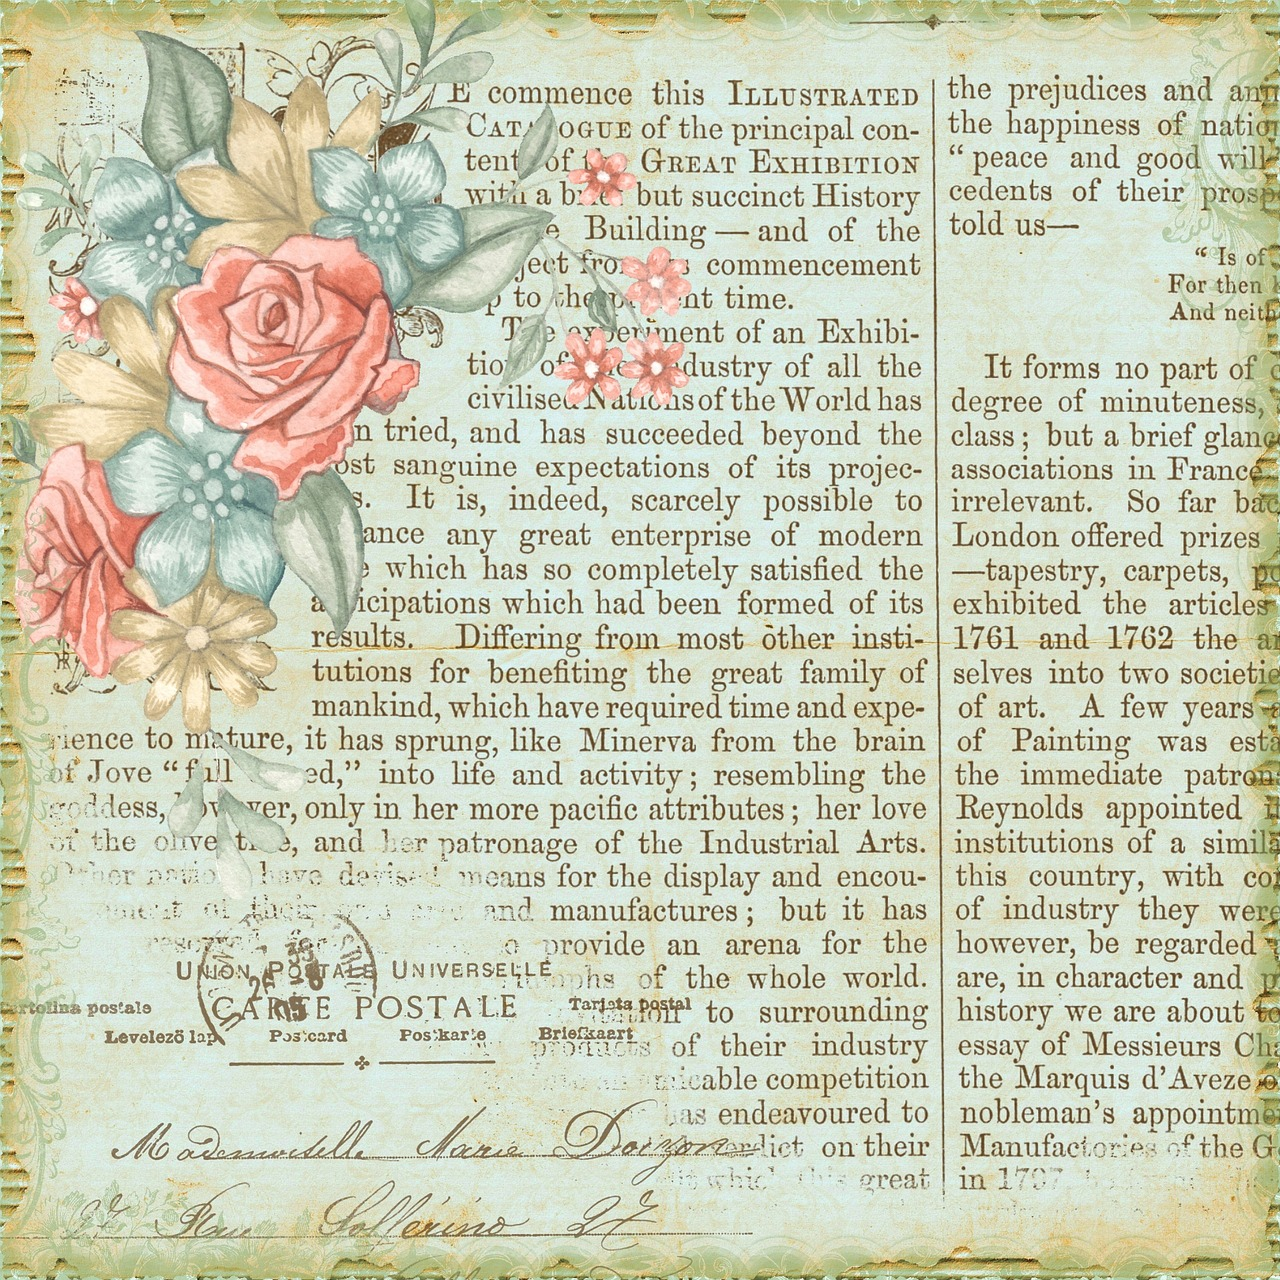 Vintage Floral Background Paper Calligraphy Free Image From